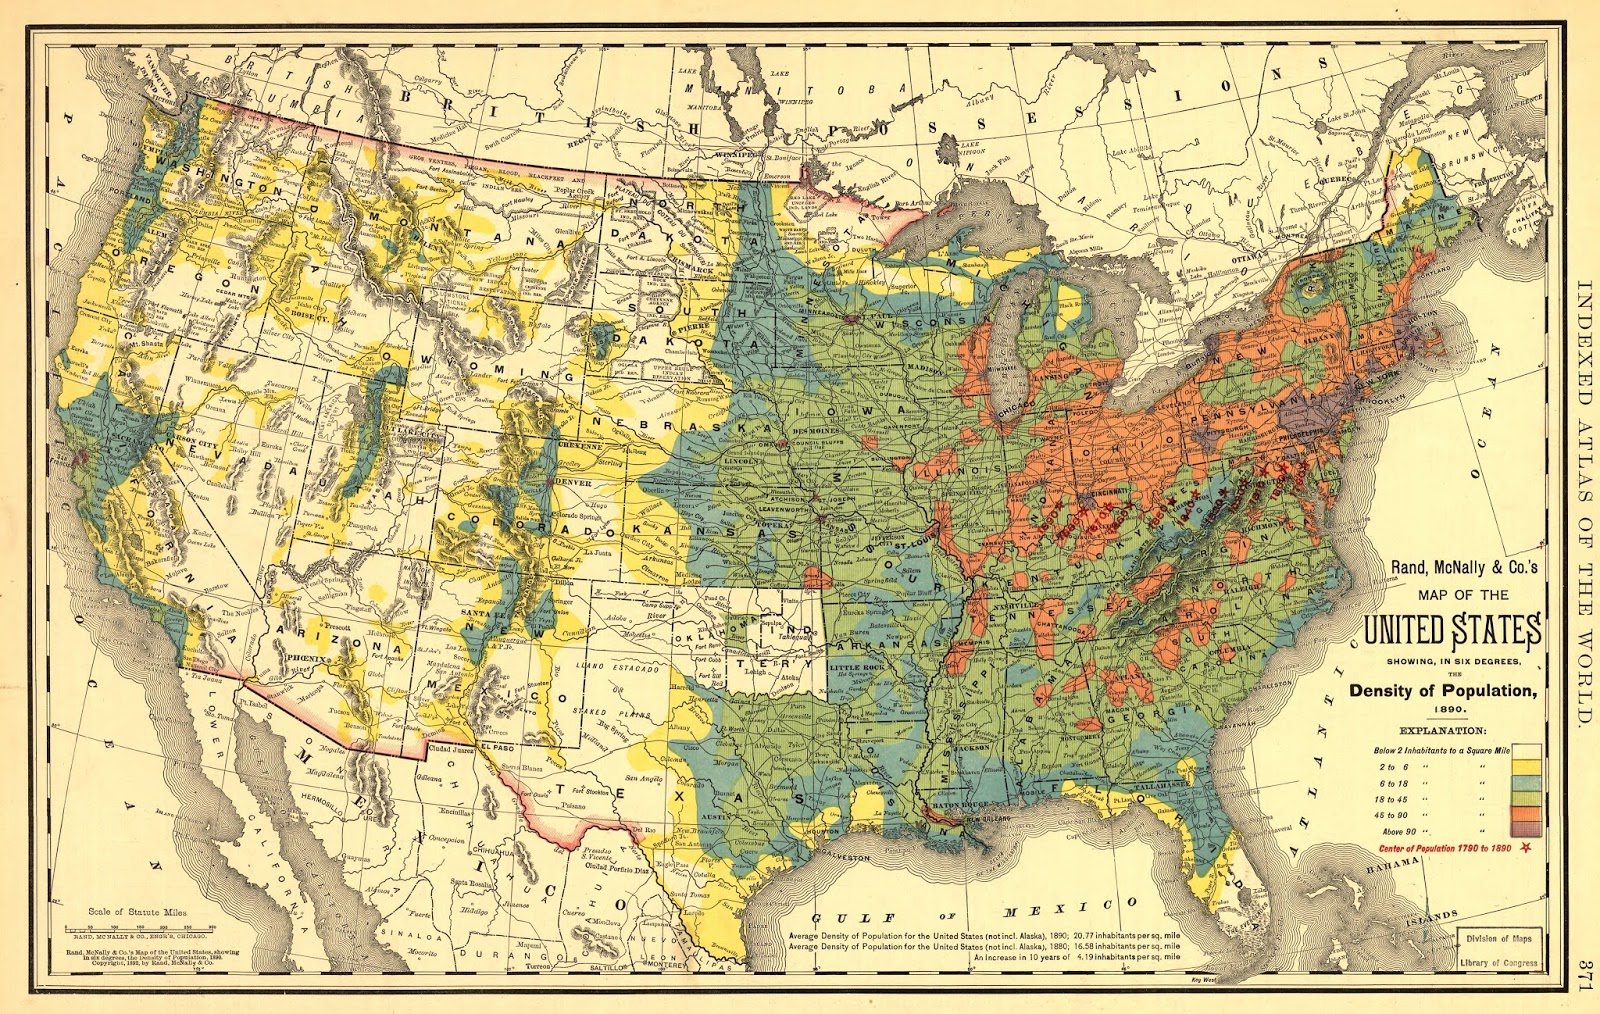 Map of the United States Showing, in Six Degrees, the Density of Population (1890)